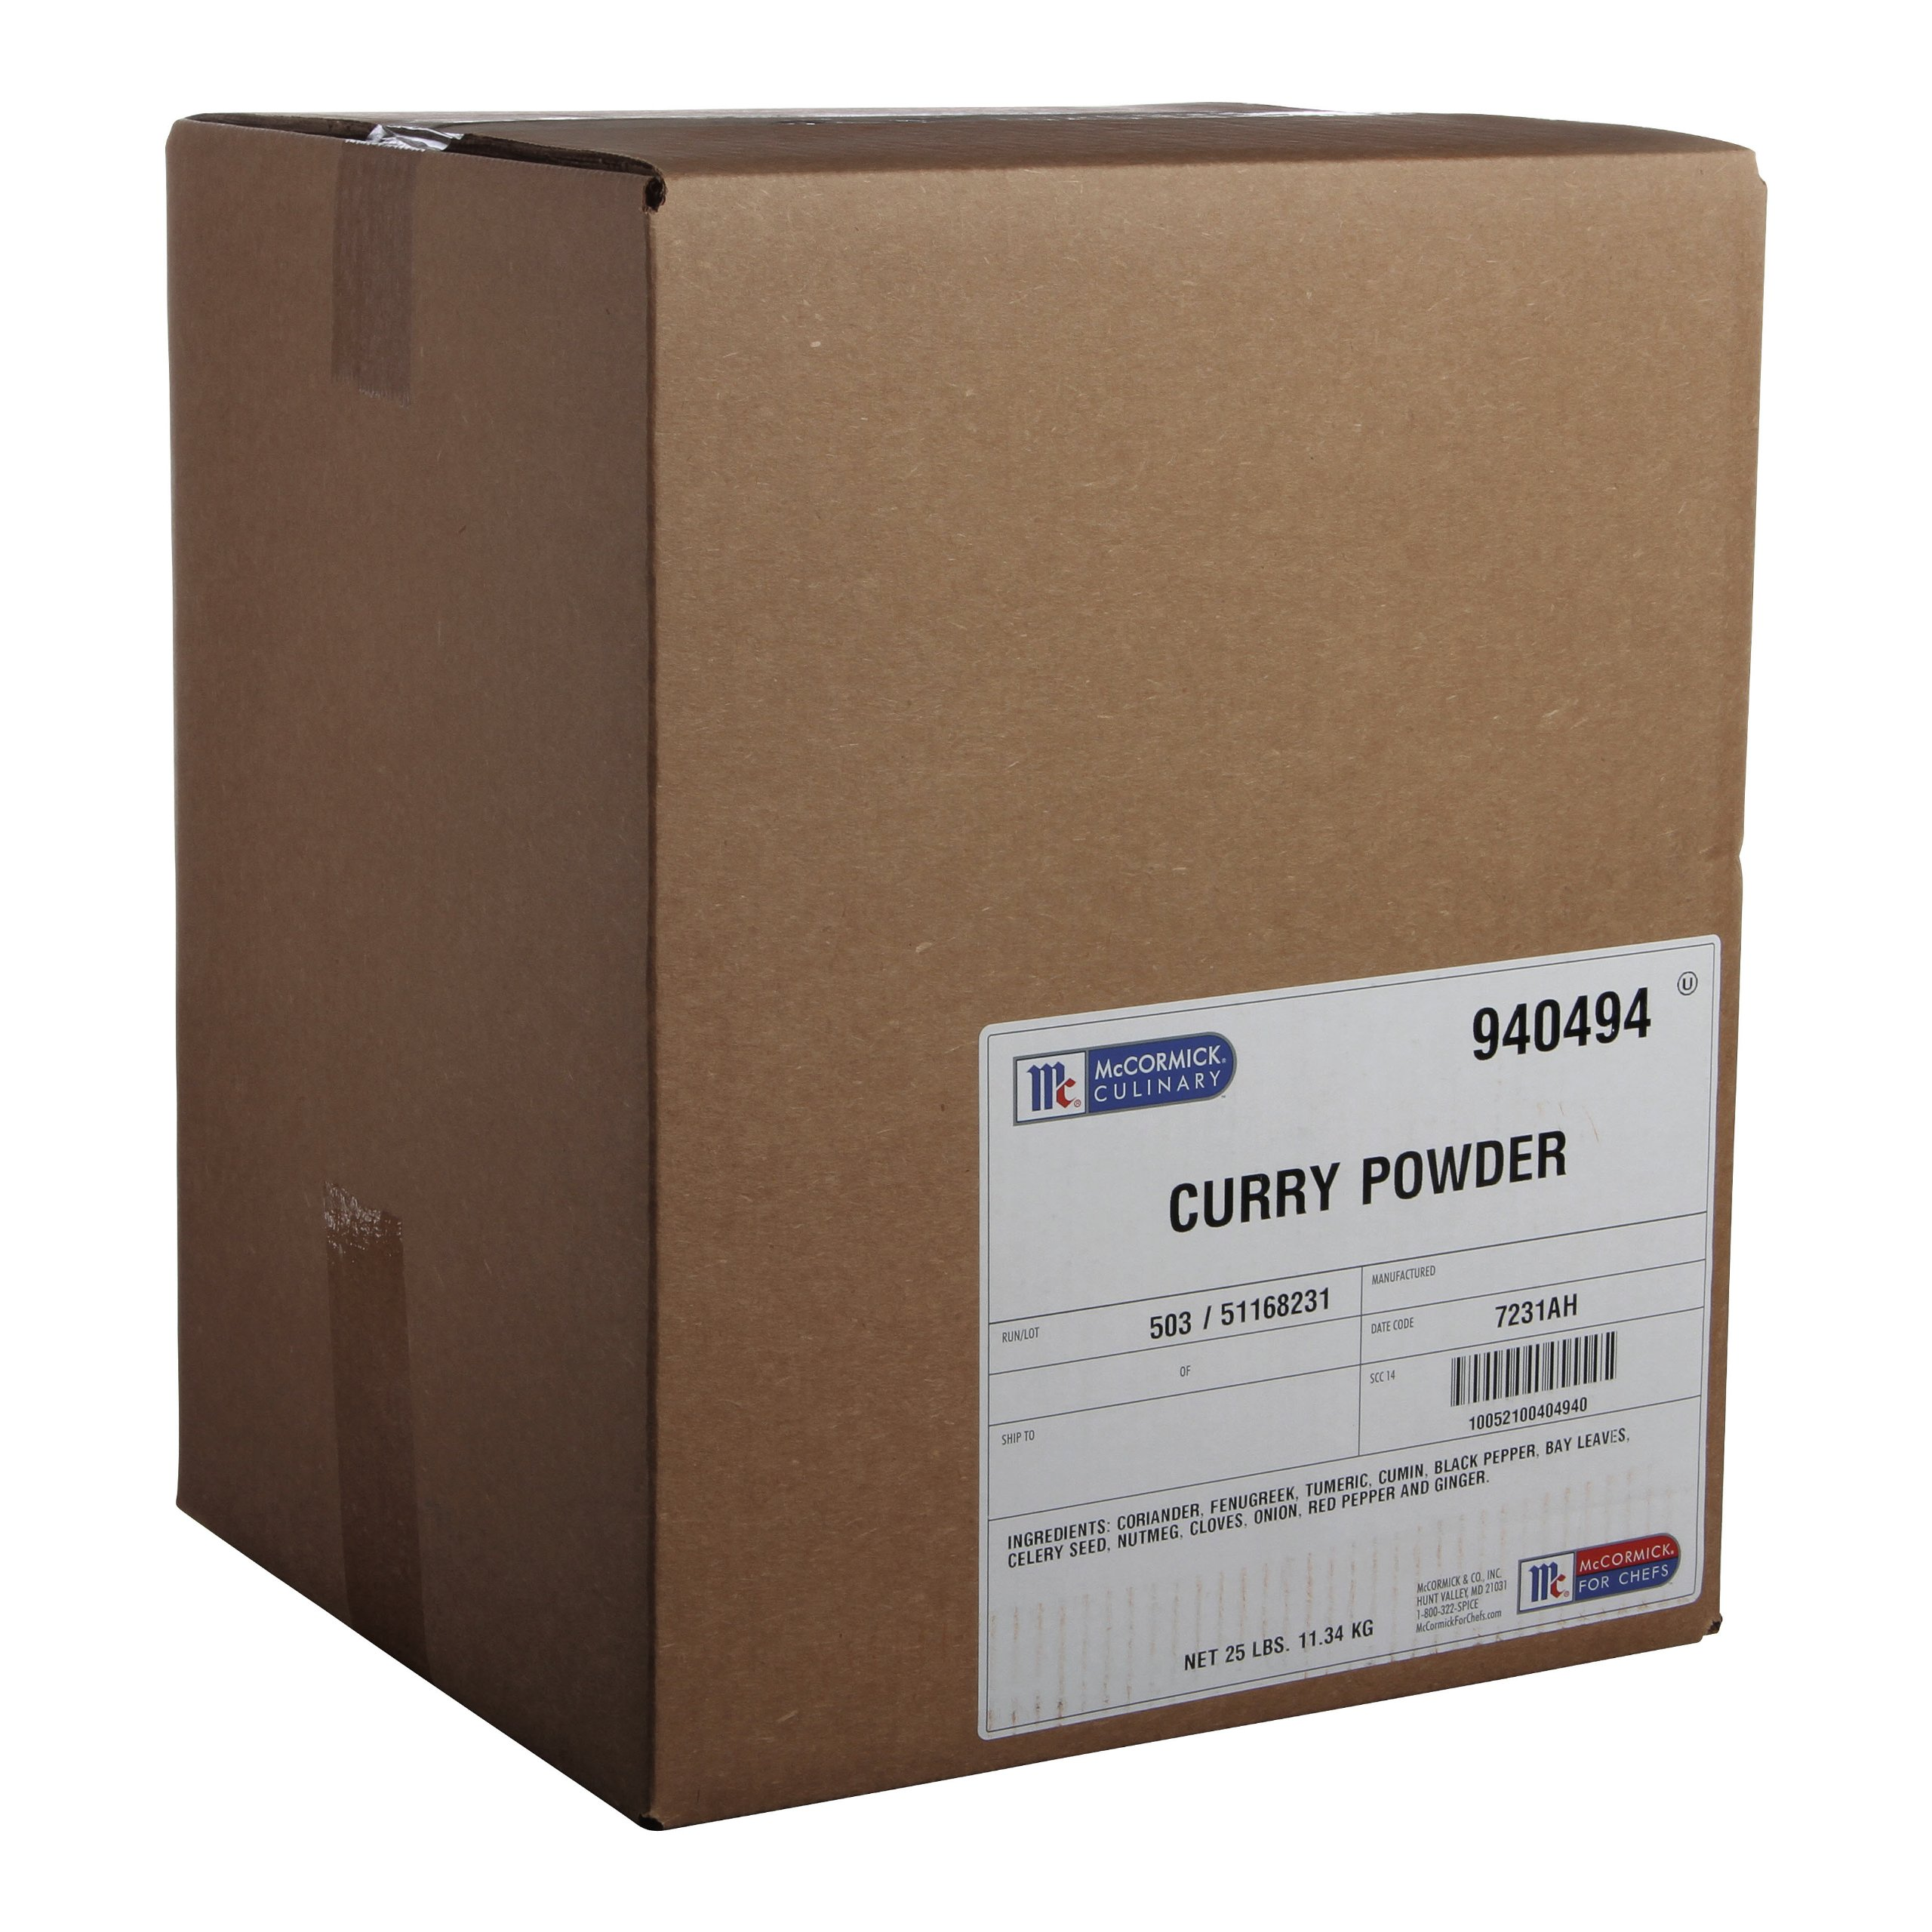 McCormick Culinary Curry Powder, 25 lbs by McCormick For Chefs (Image #3)